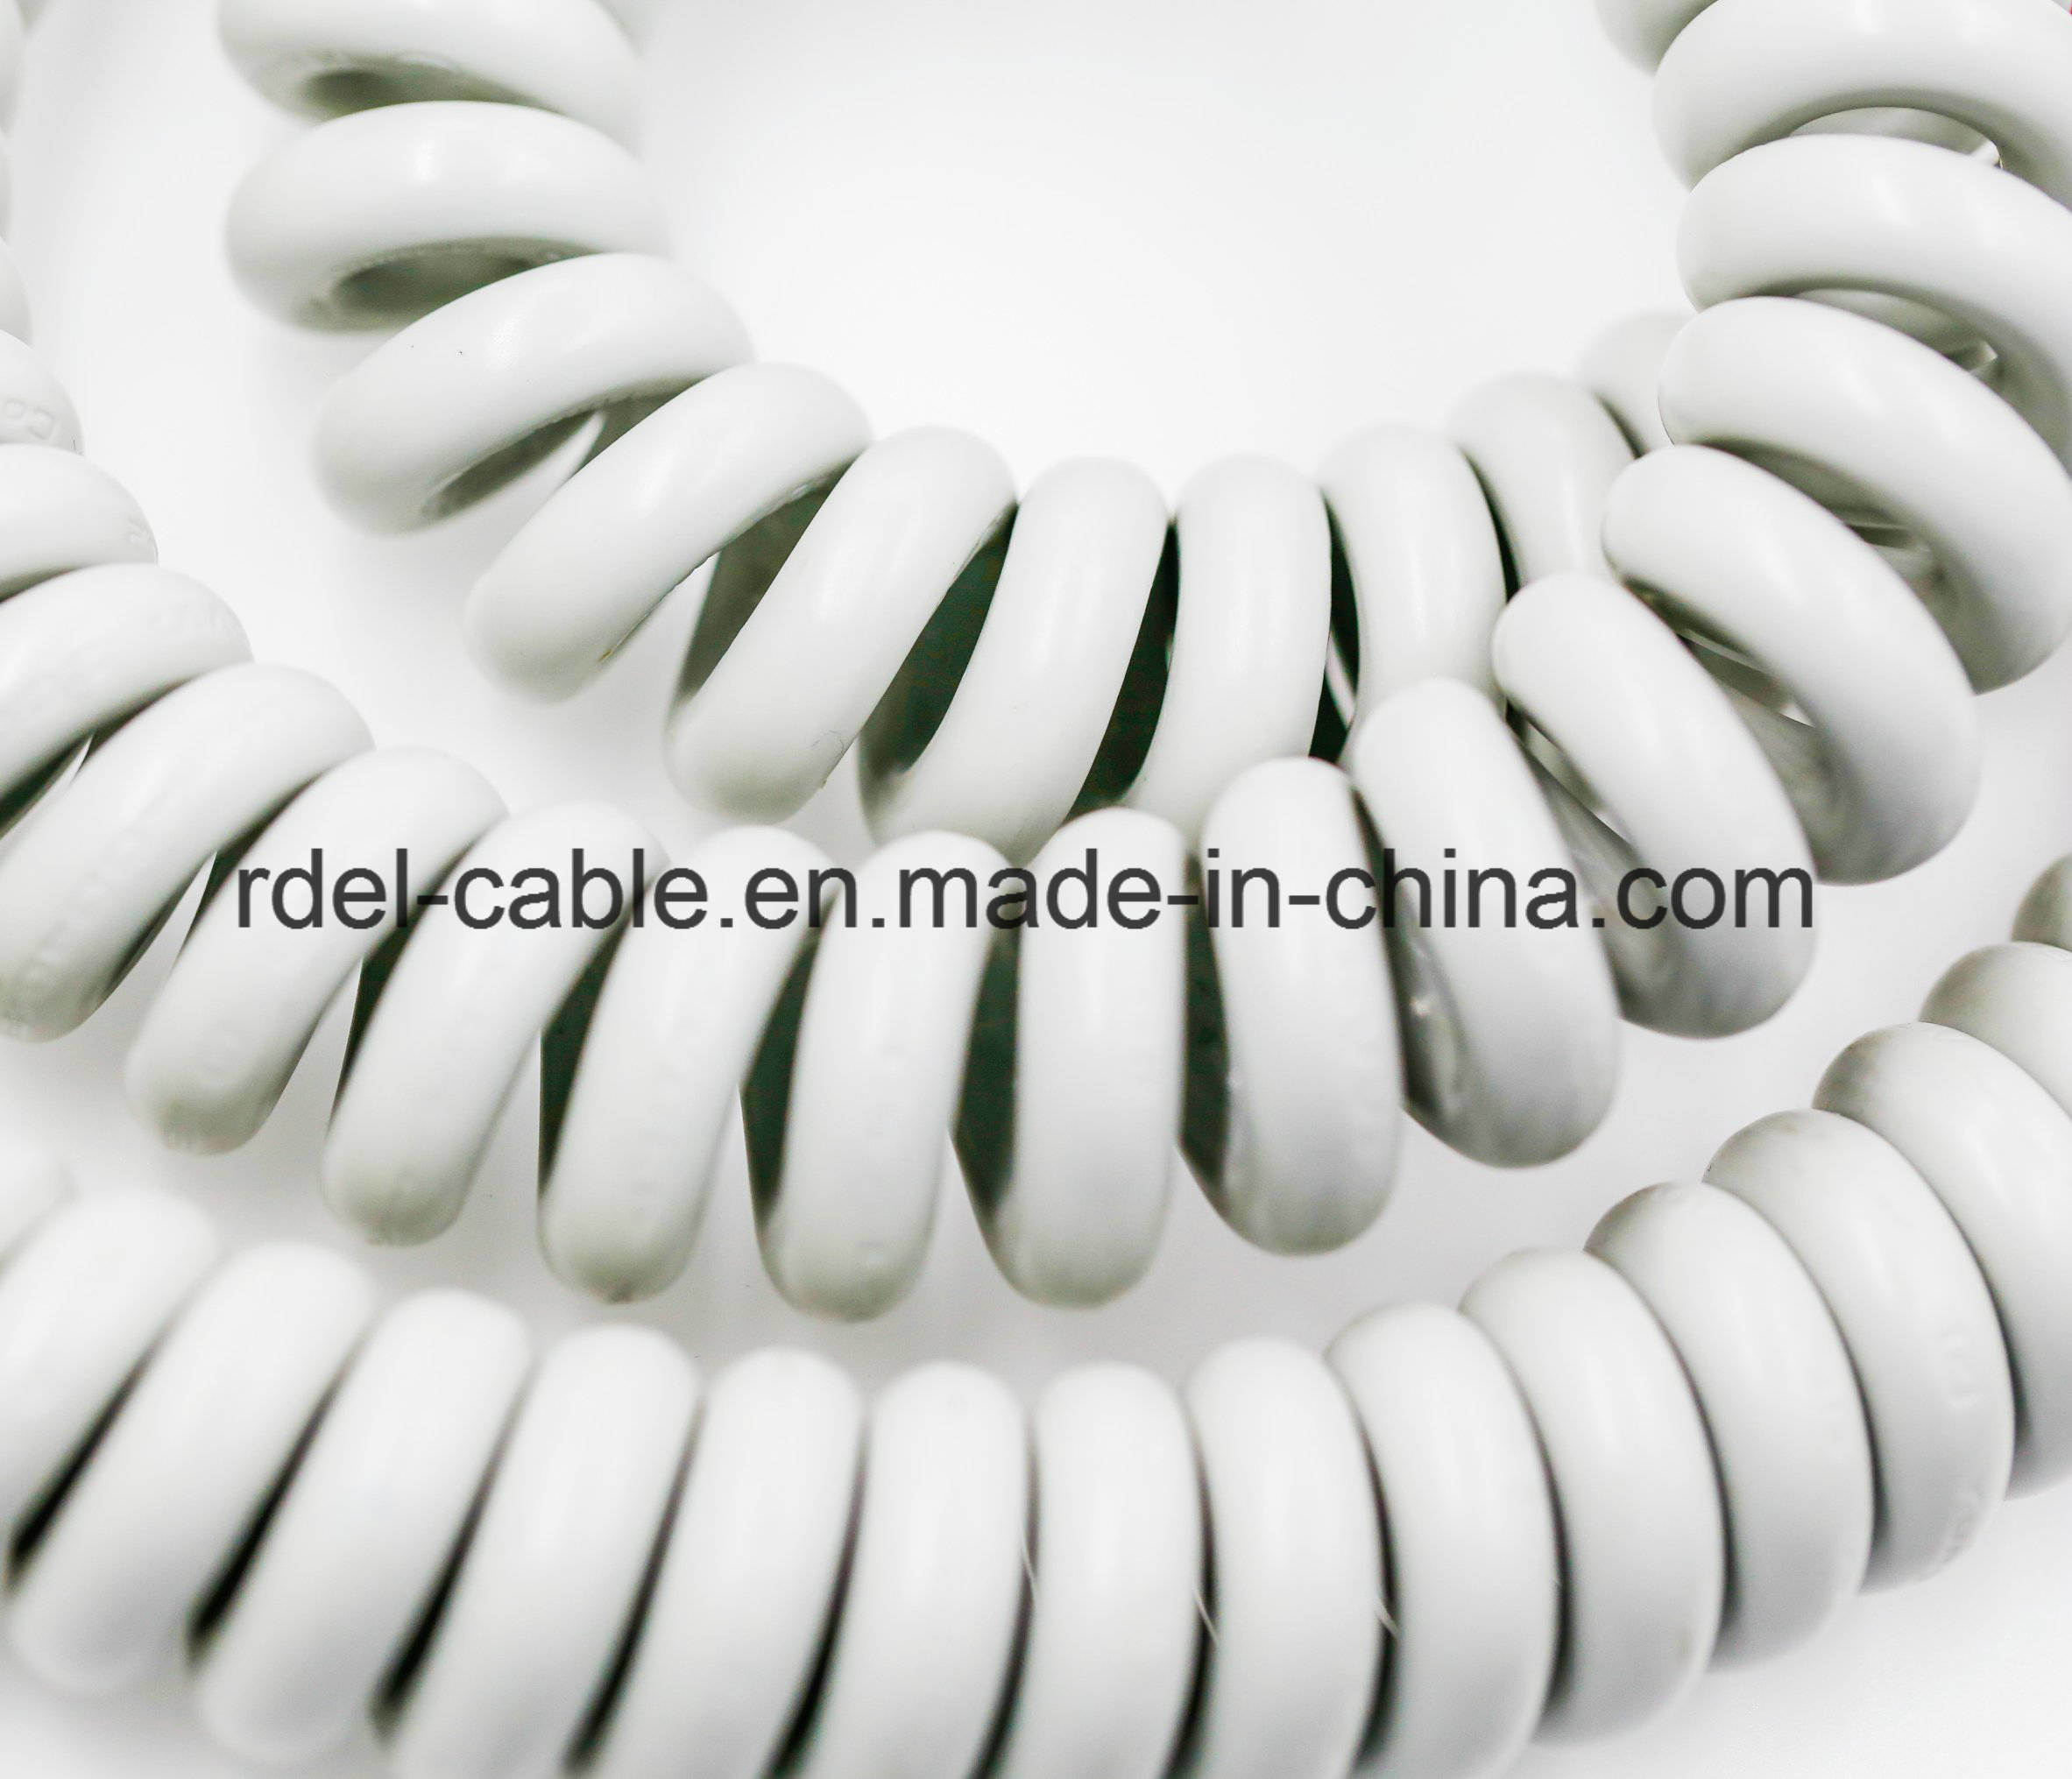 China 2 /3 /4 /5 / 6 / 7 Core PVC/PU Spiral Cord Coiled Cable ...